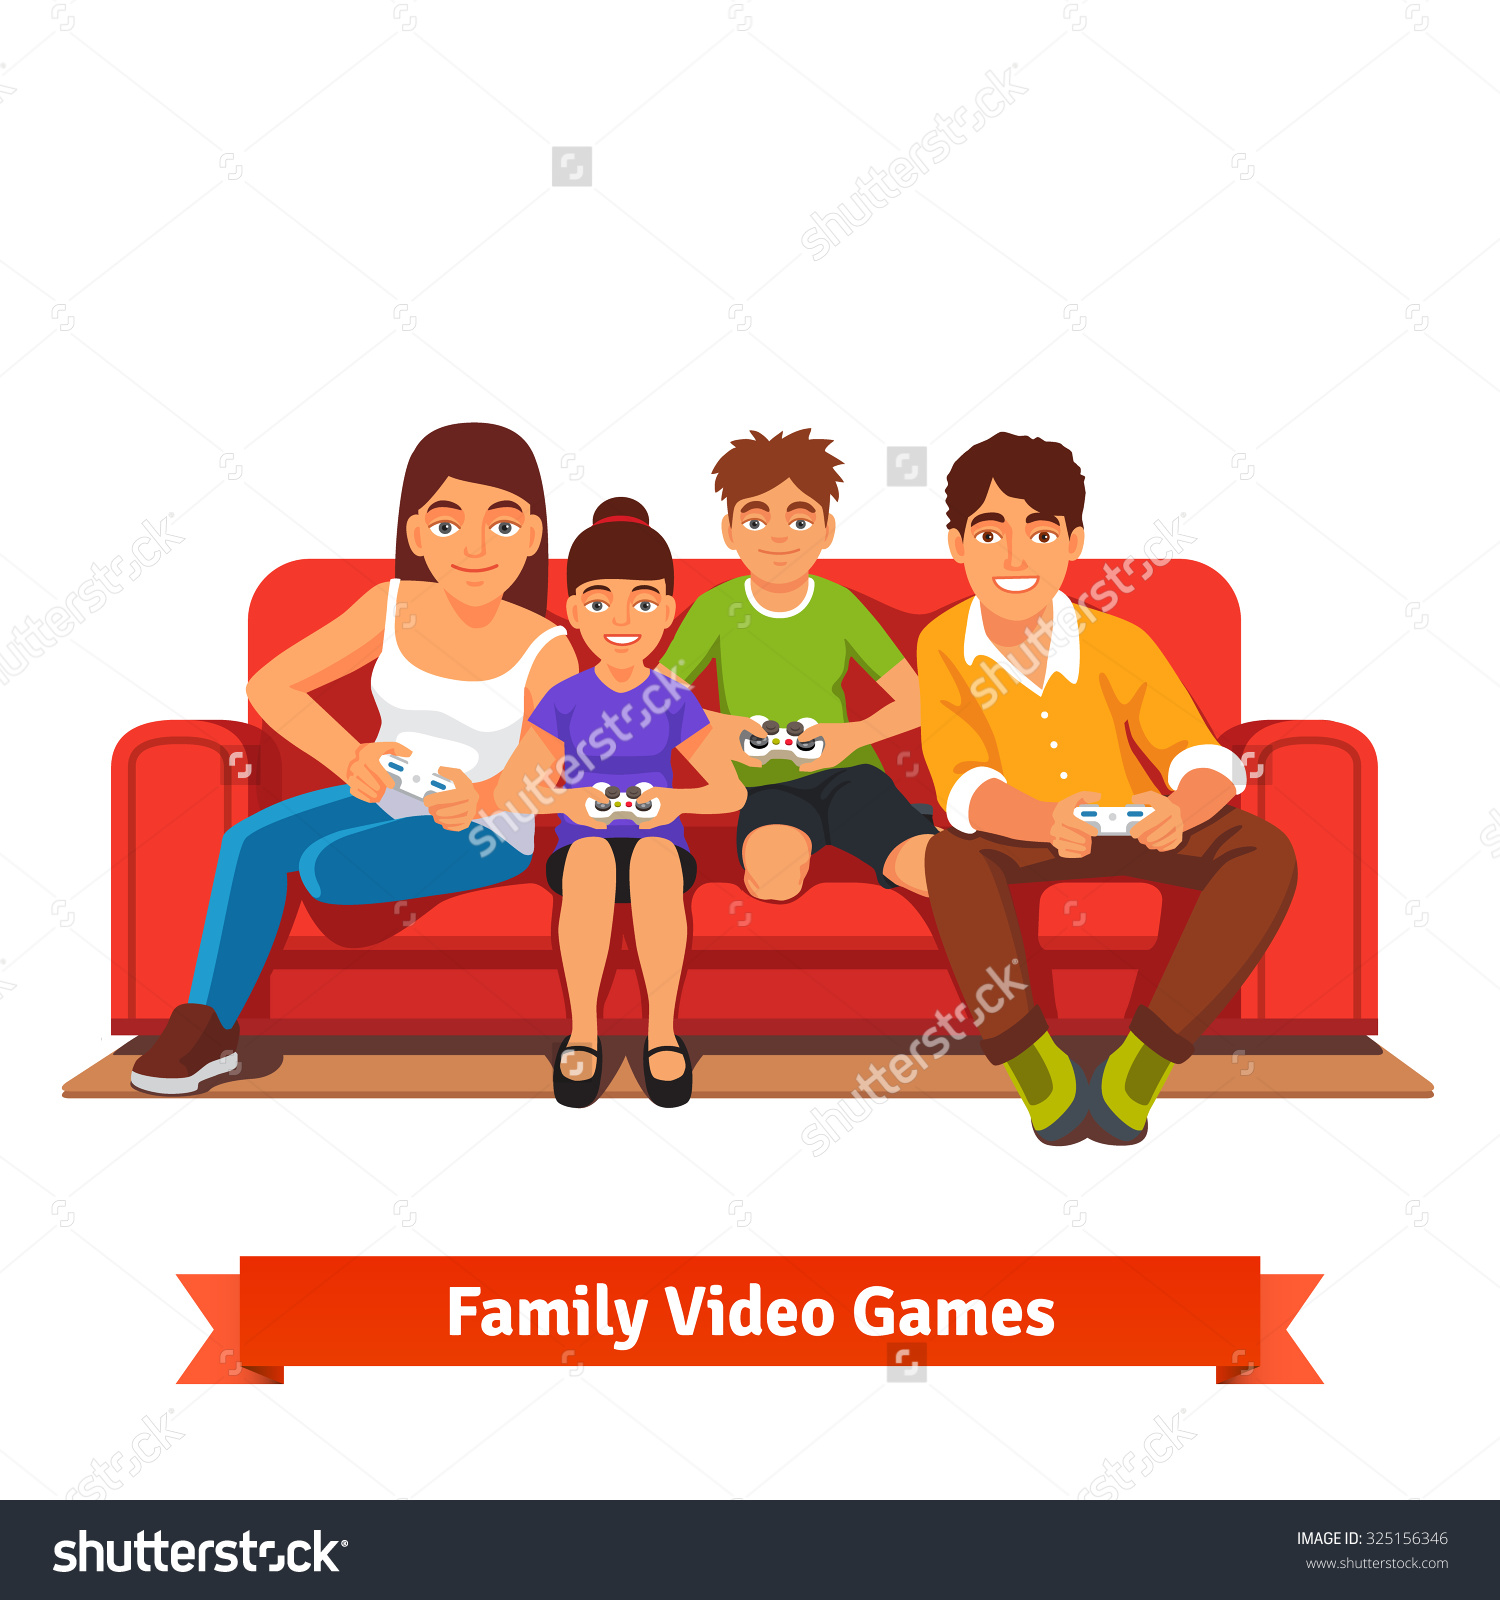 Family sitting on couch clipart graphic freeuse download Family Sitting On Couch Clipart (61 ) - Free Clipart graphic freeuse download